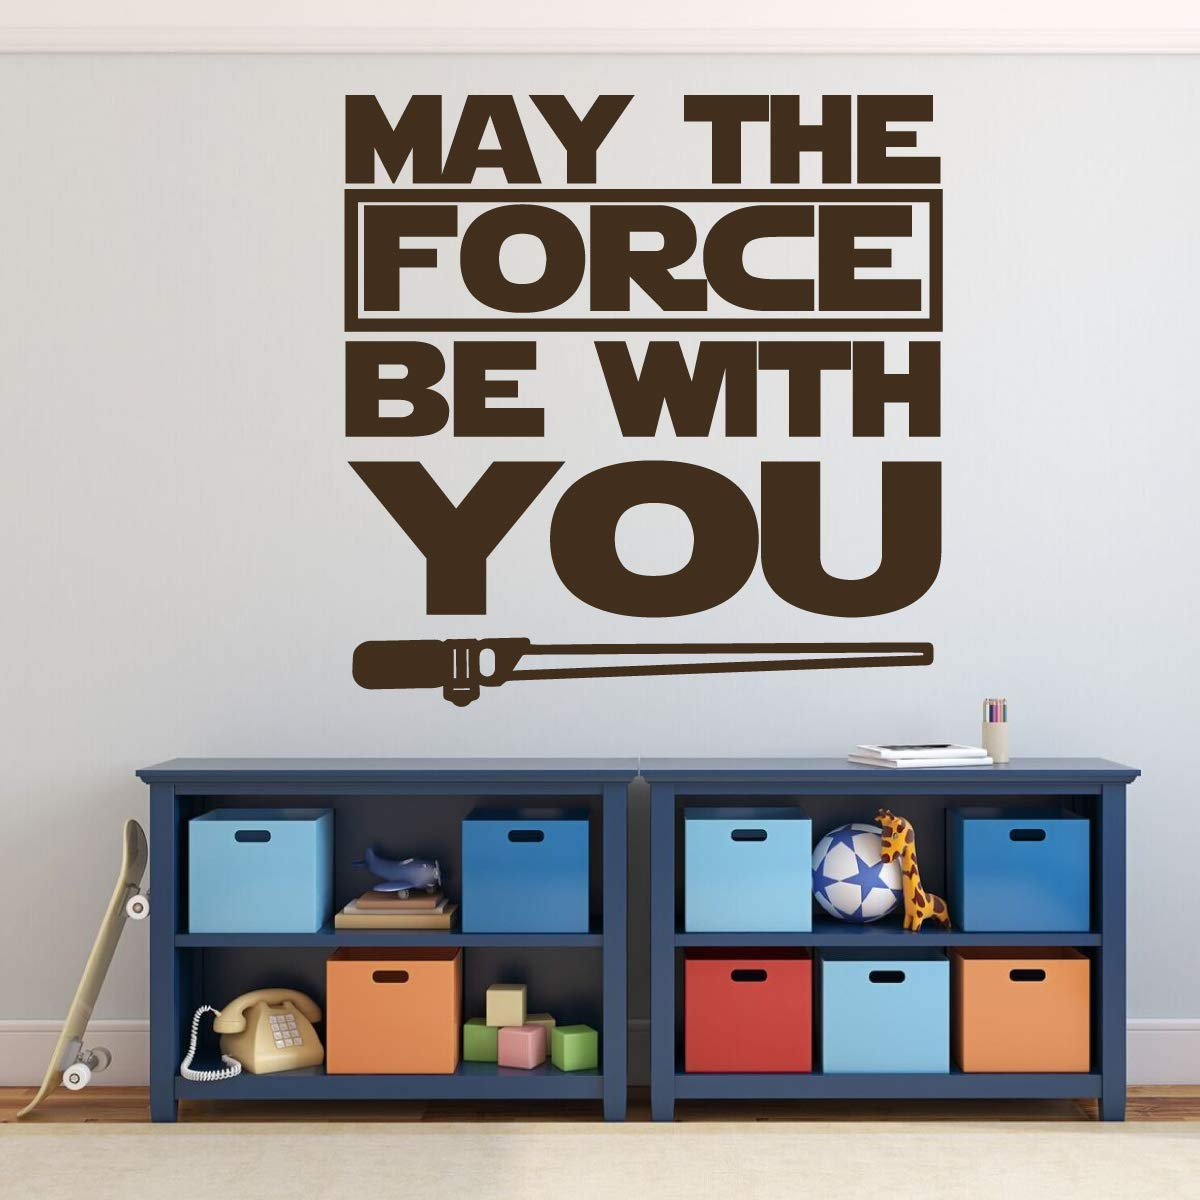 Amazon Com Star Wars Lightsaber Vinyl Wall Decal May The Force